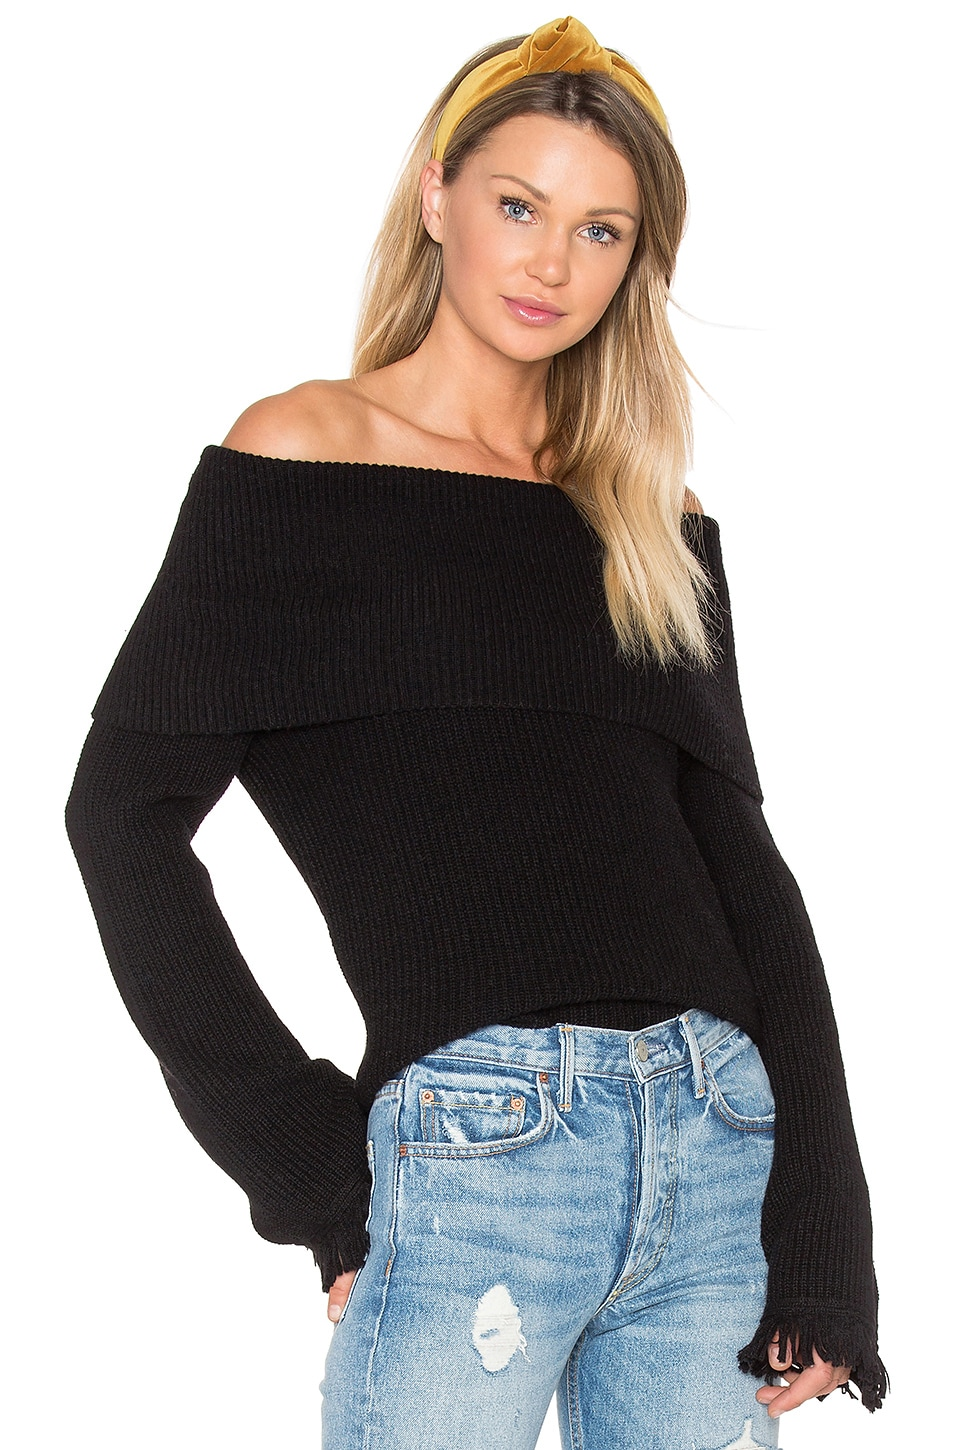 Ella Moss Avila Sweater in Black